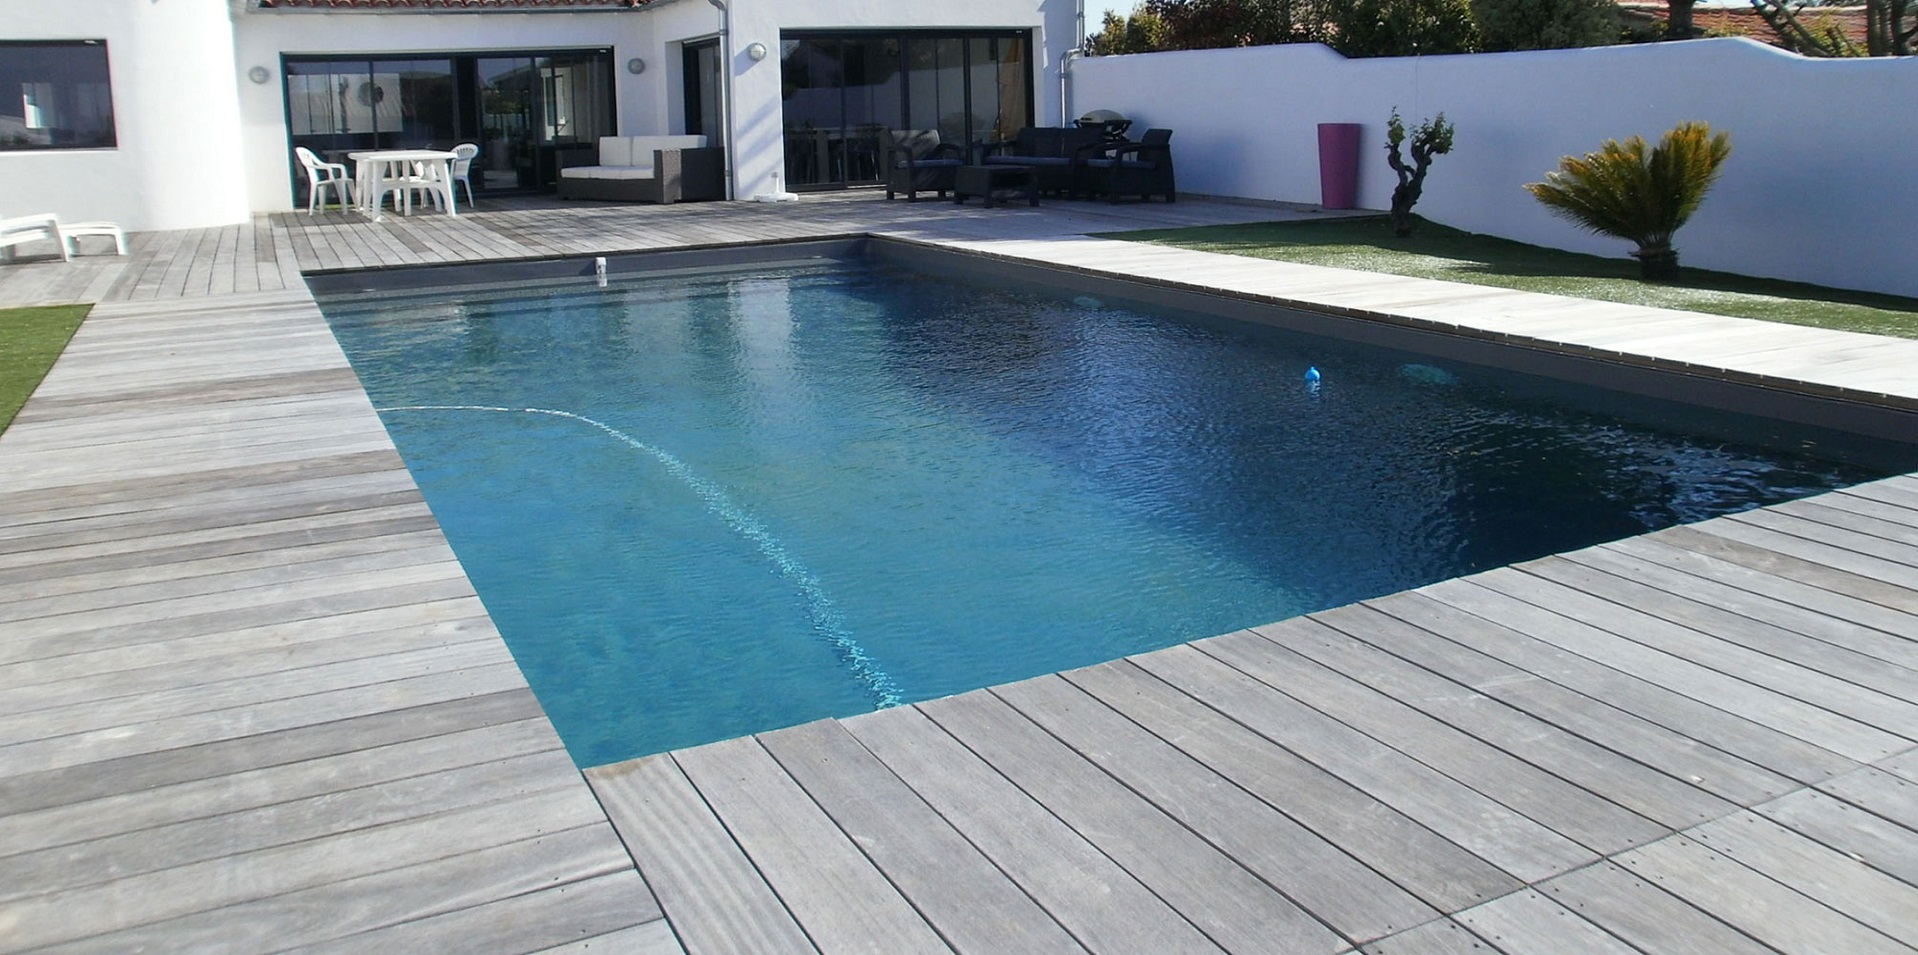 Piscine carrelage beige besancon maison design for Piscine besancon